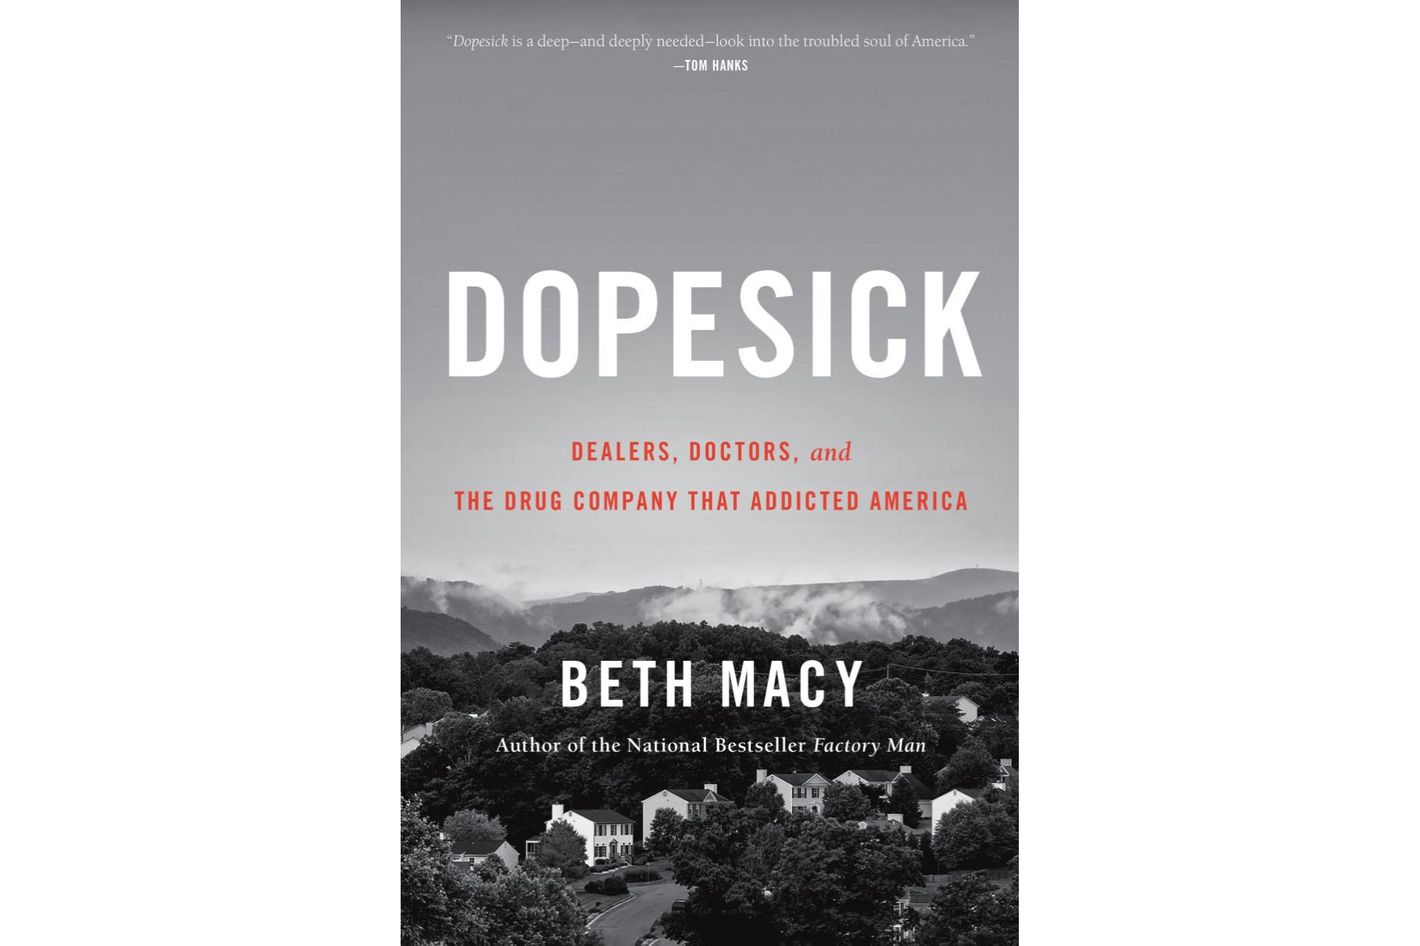 Dopesick: Dealers, Doctors, and the Drug Company that Addicted America, by Beth Macy